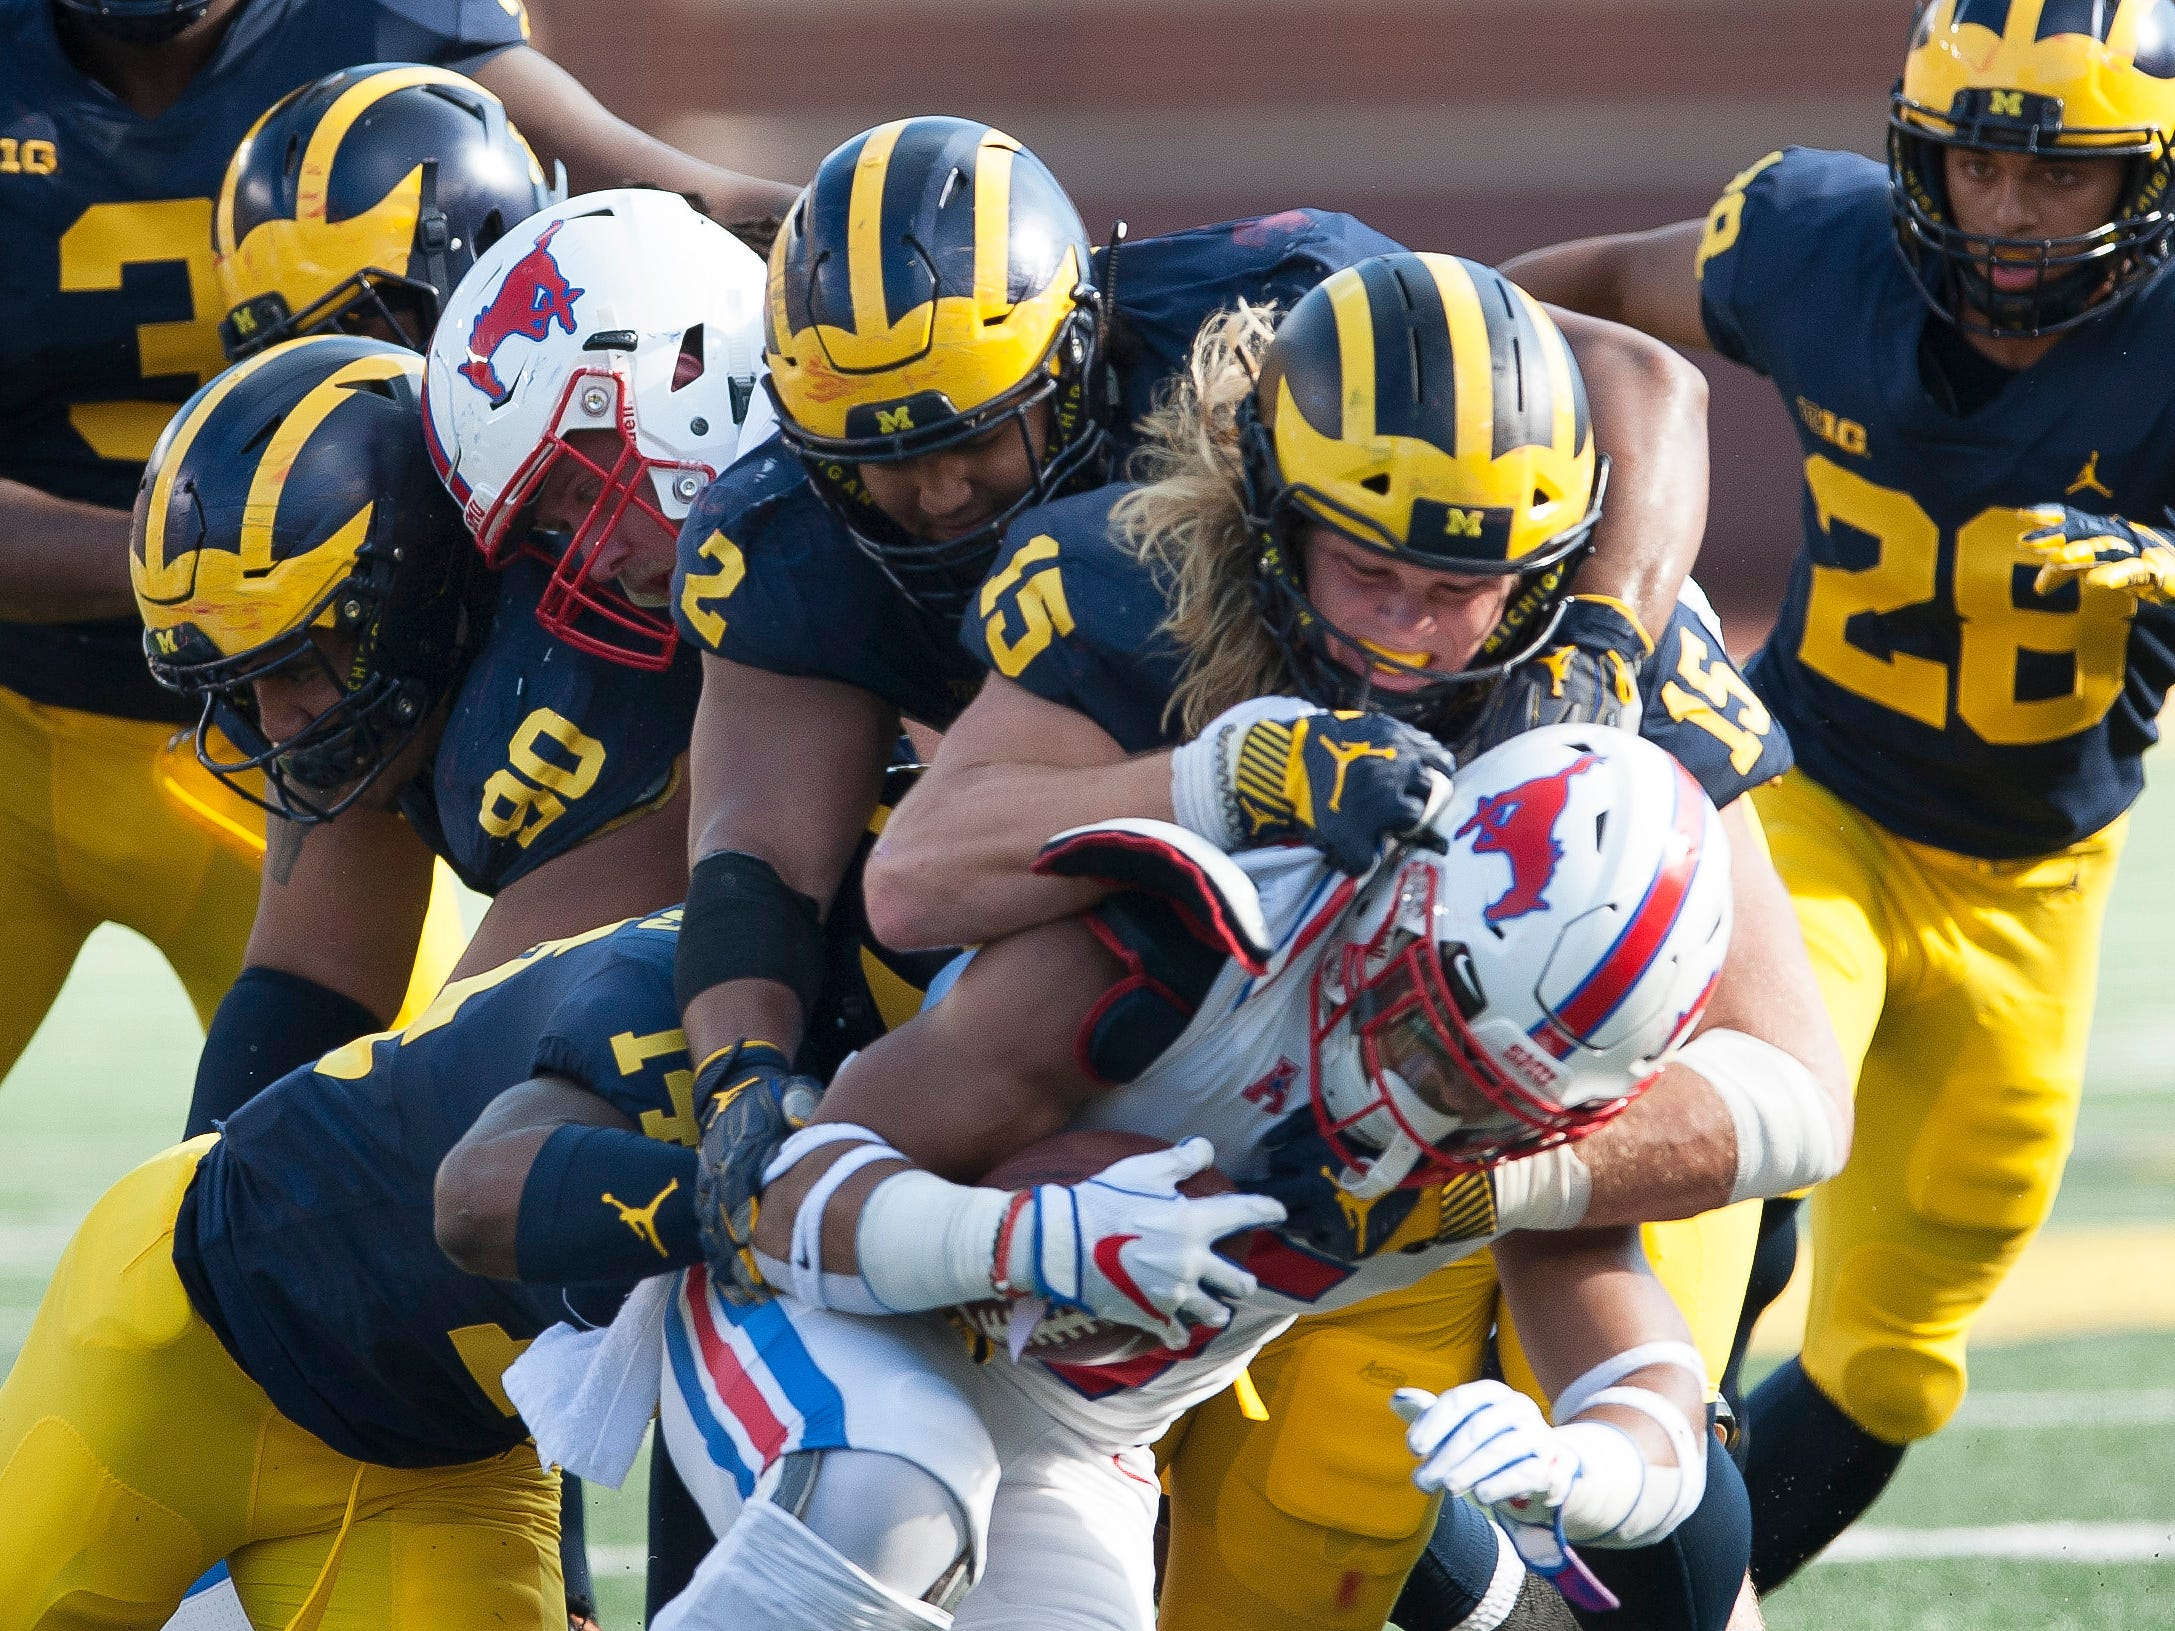 Michigan defensive lineman Chase Winovich (15) and a host of other Michigan defenders gang tackle Southern Methodist running back Xavier Jones for a loss in the second quarter. The other Michigan players are defensive back Josh Metellus (14), defensive lineman Bryan Mone (90) and defensive lineman Carlo Kemp (2).